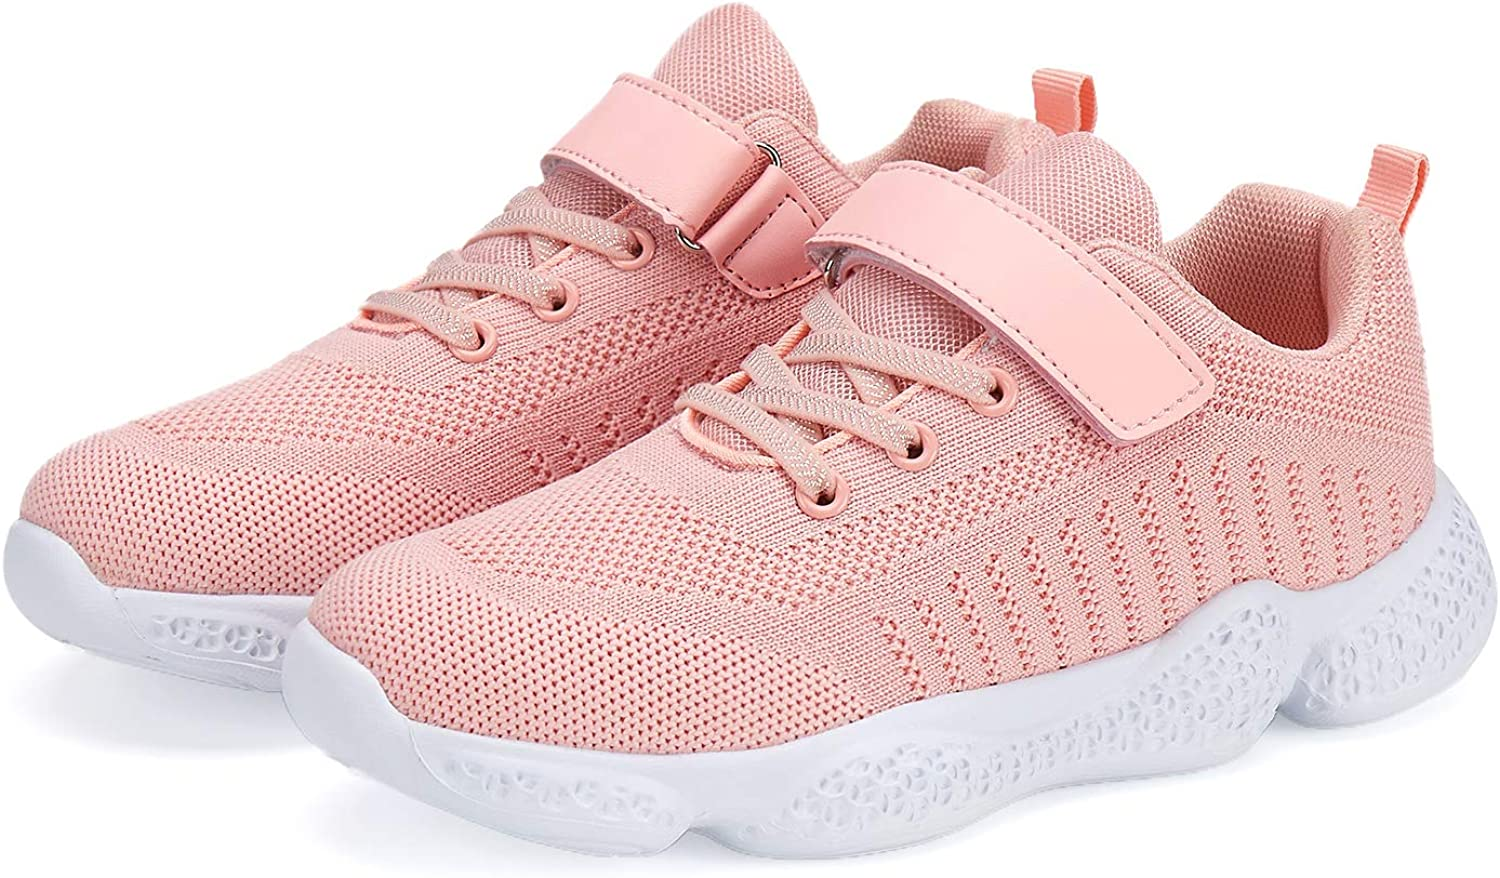 Hetios Kids Shoes Girls Lightweight Athletic Running Shoes Breathable Knit School Sports Shoes (Toddler/Little Kid/Big Kid)